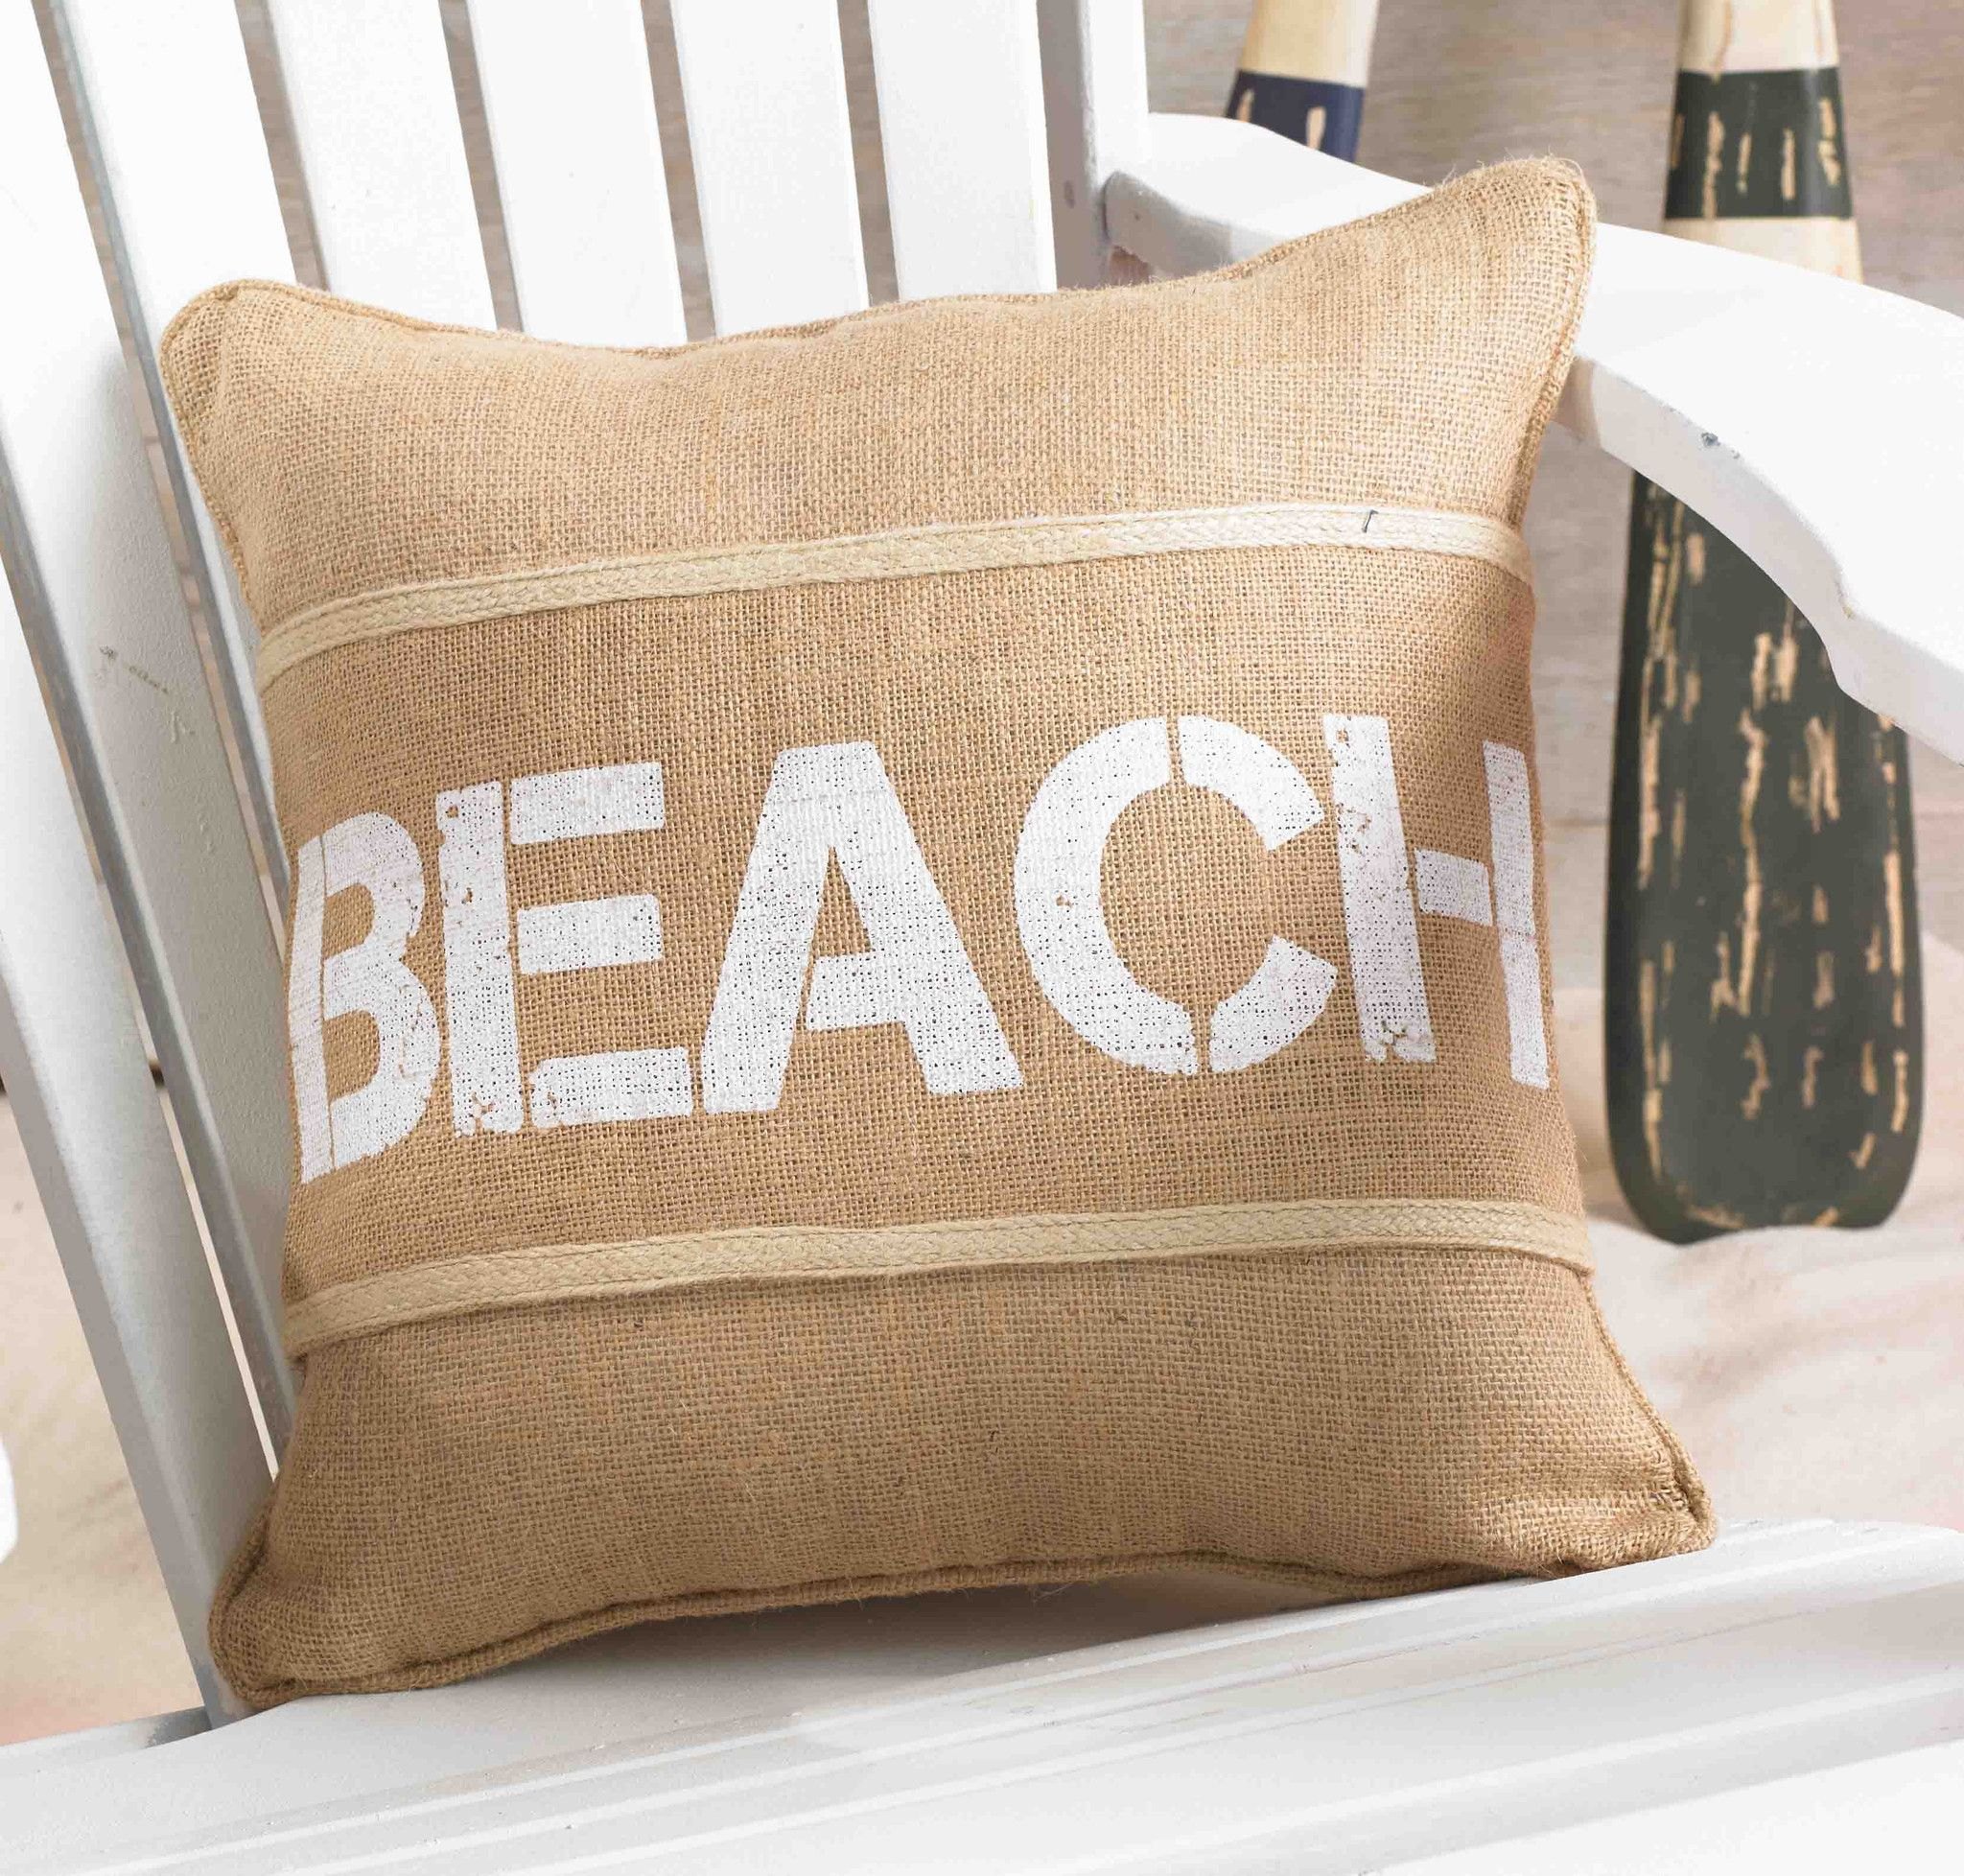 ideas out code of decor see printed decorative the that top pillows on with it ocean gallery pillow inspiration throw seller beach card small